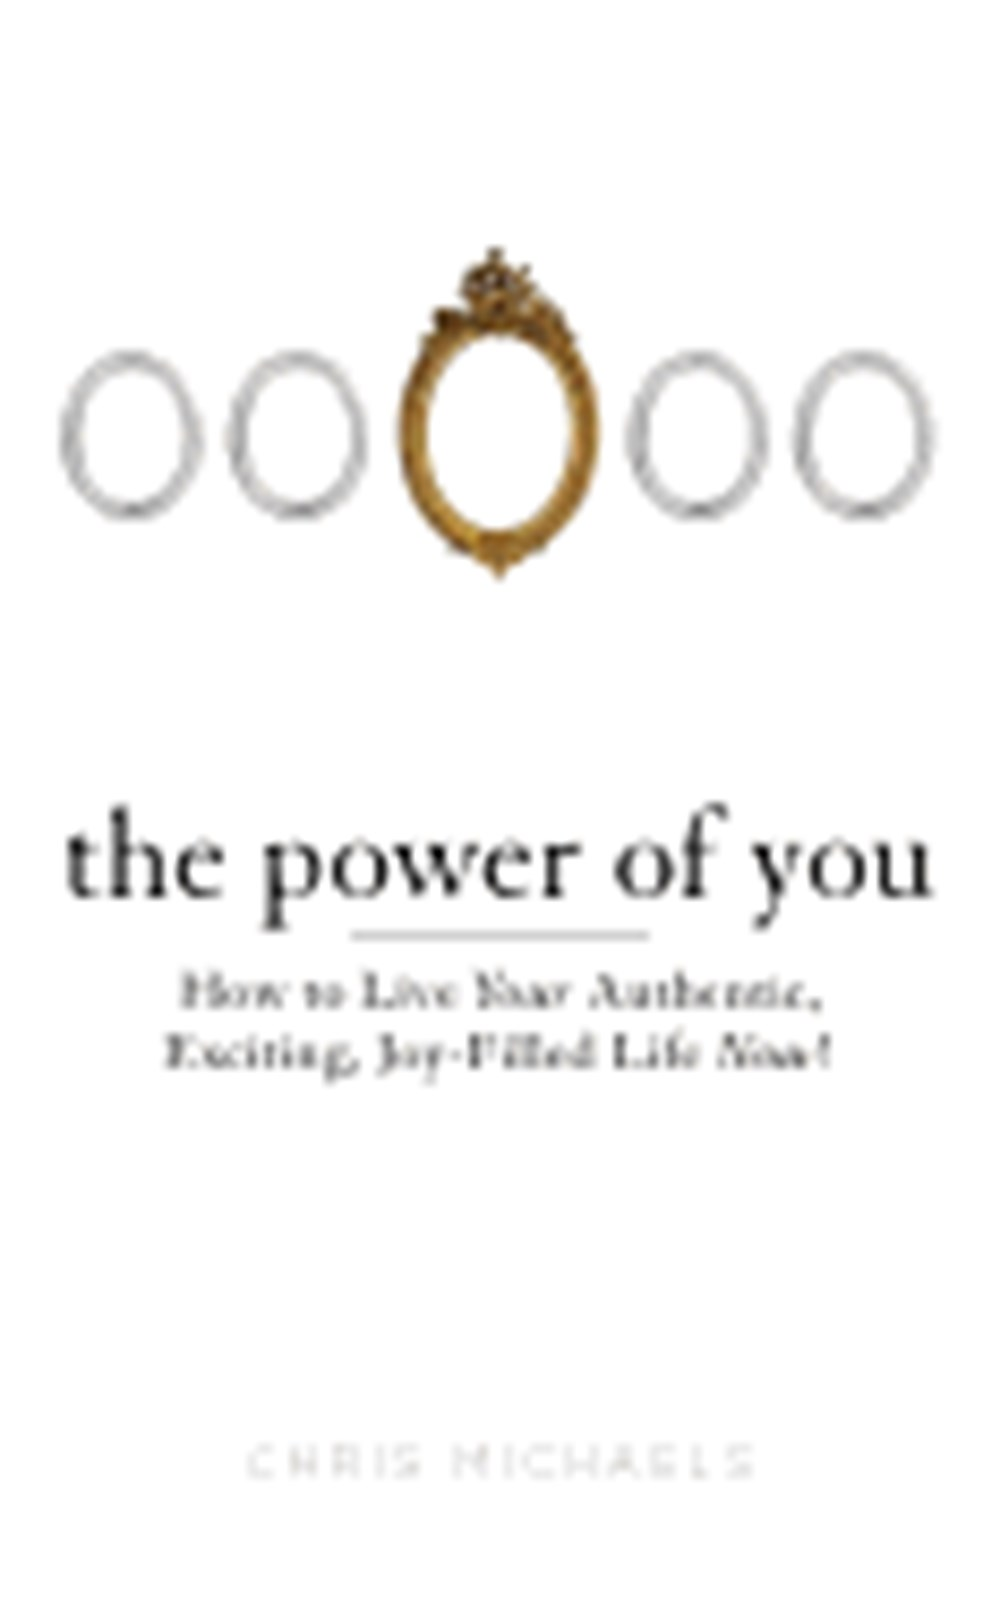 Power of You How to Live Your Authentic, Exciting, Joy-Filled Life Now!